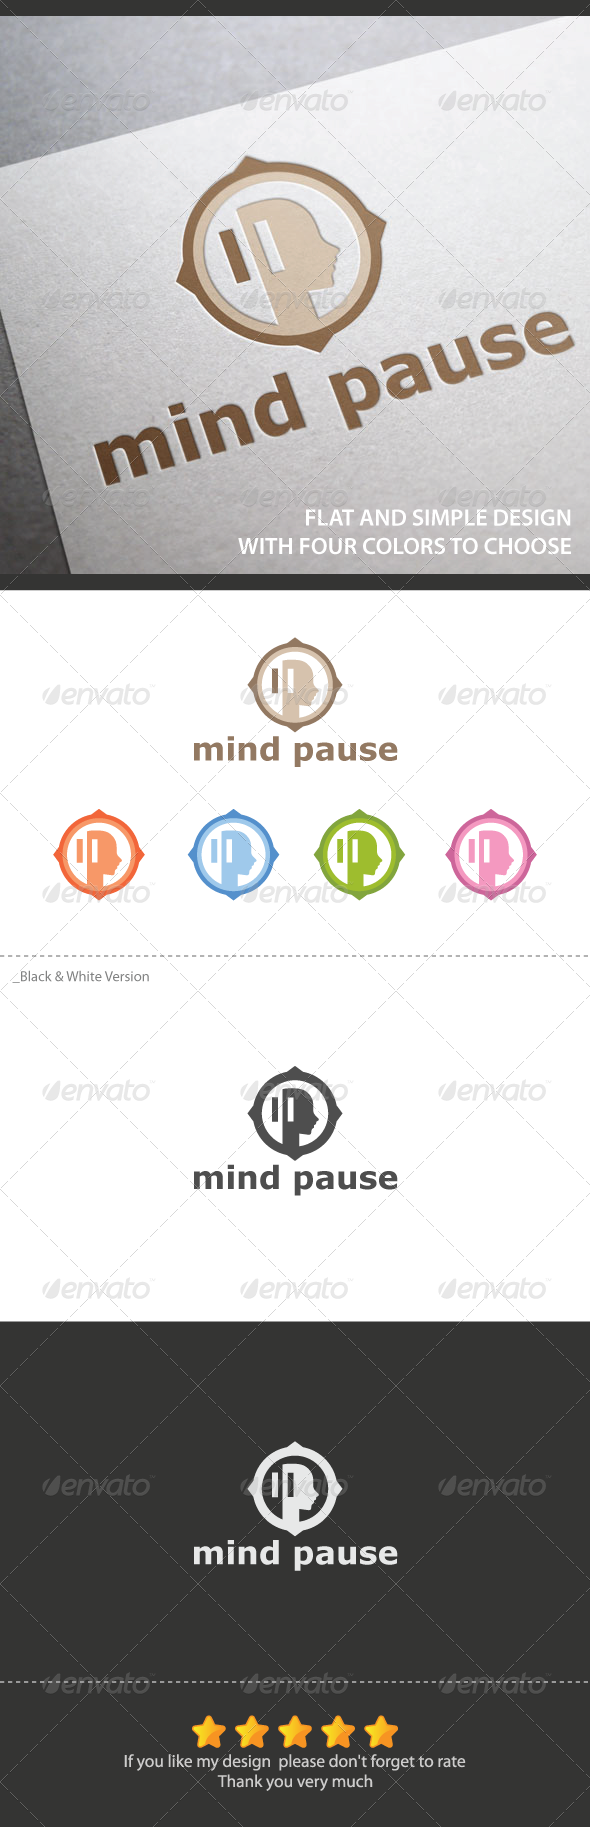 GraphicRiver Mind Pause 5857438